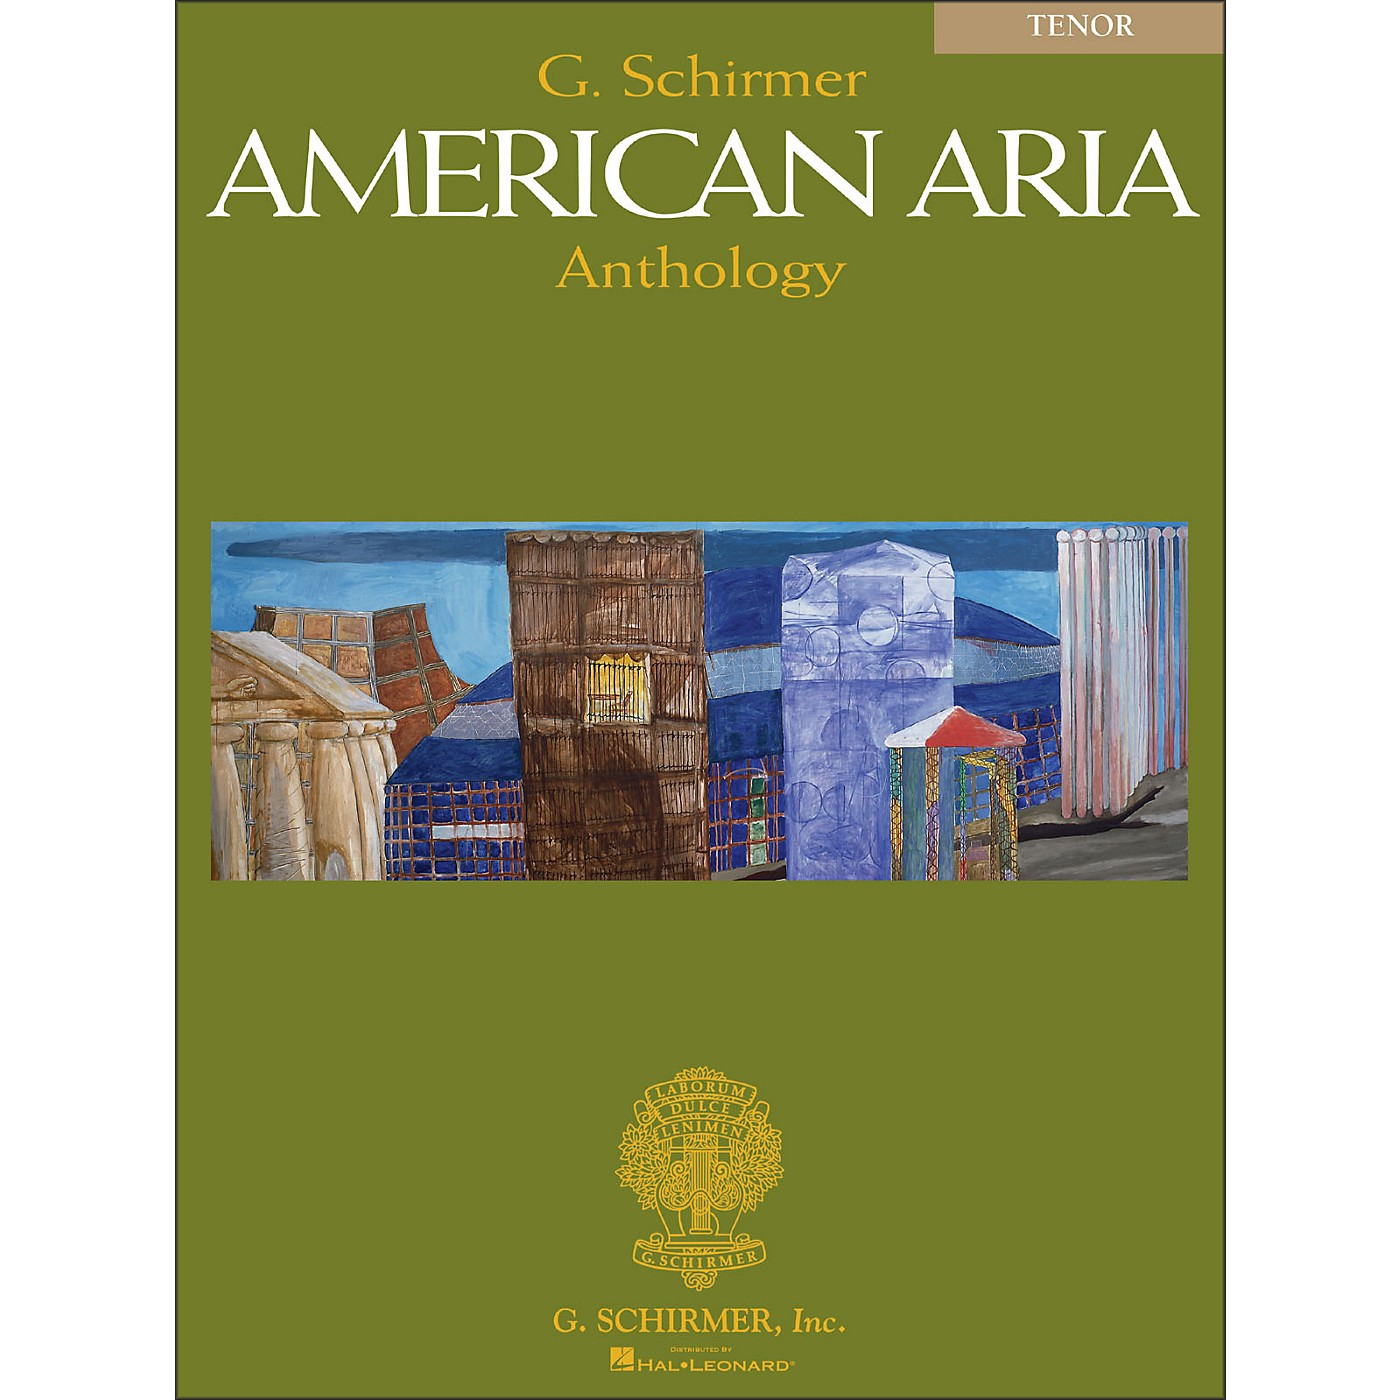 G. Schirmer G Schirmer American Aria Anthology for Tenor Voice thumbnail